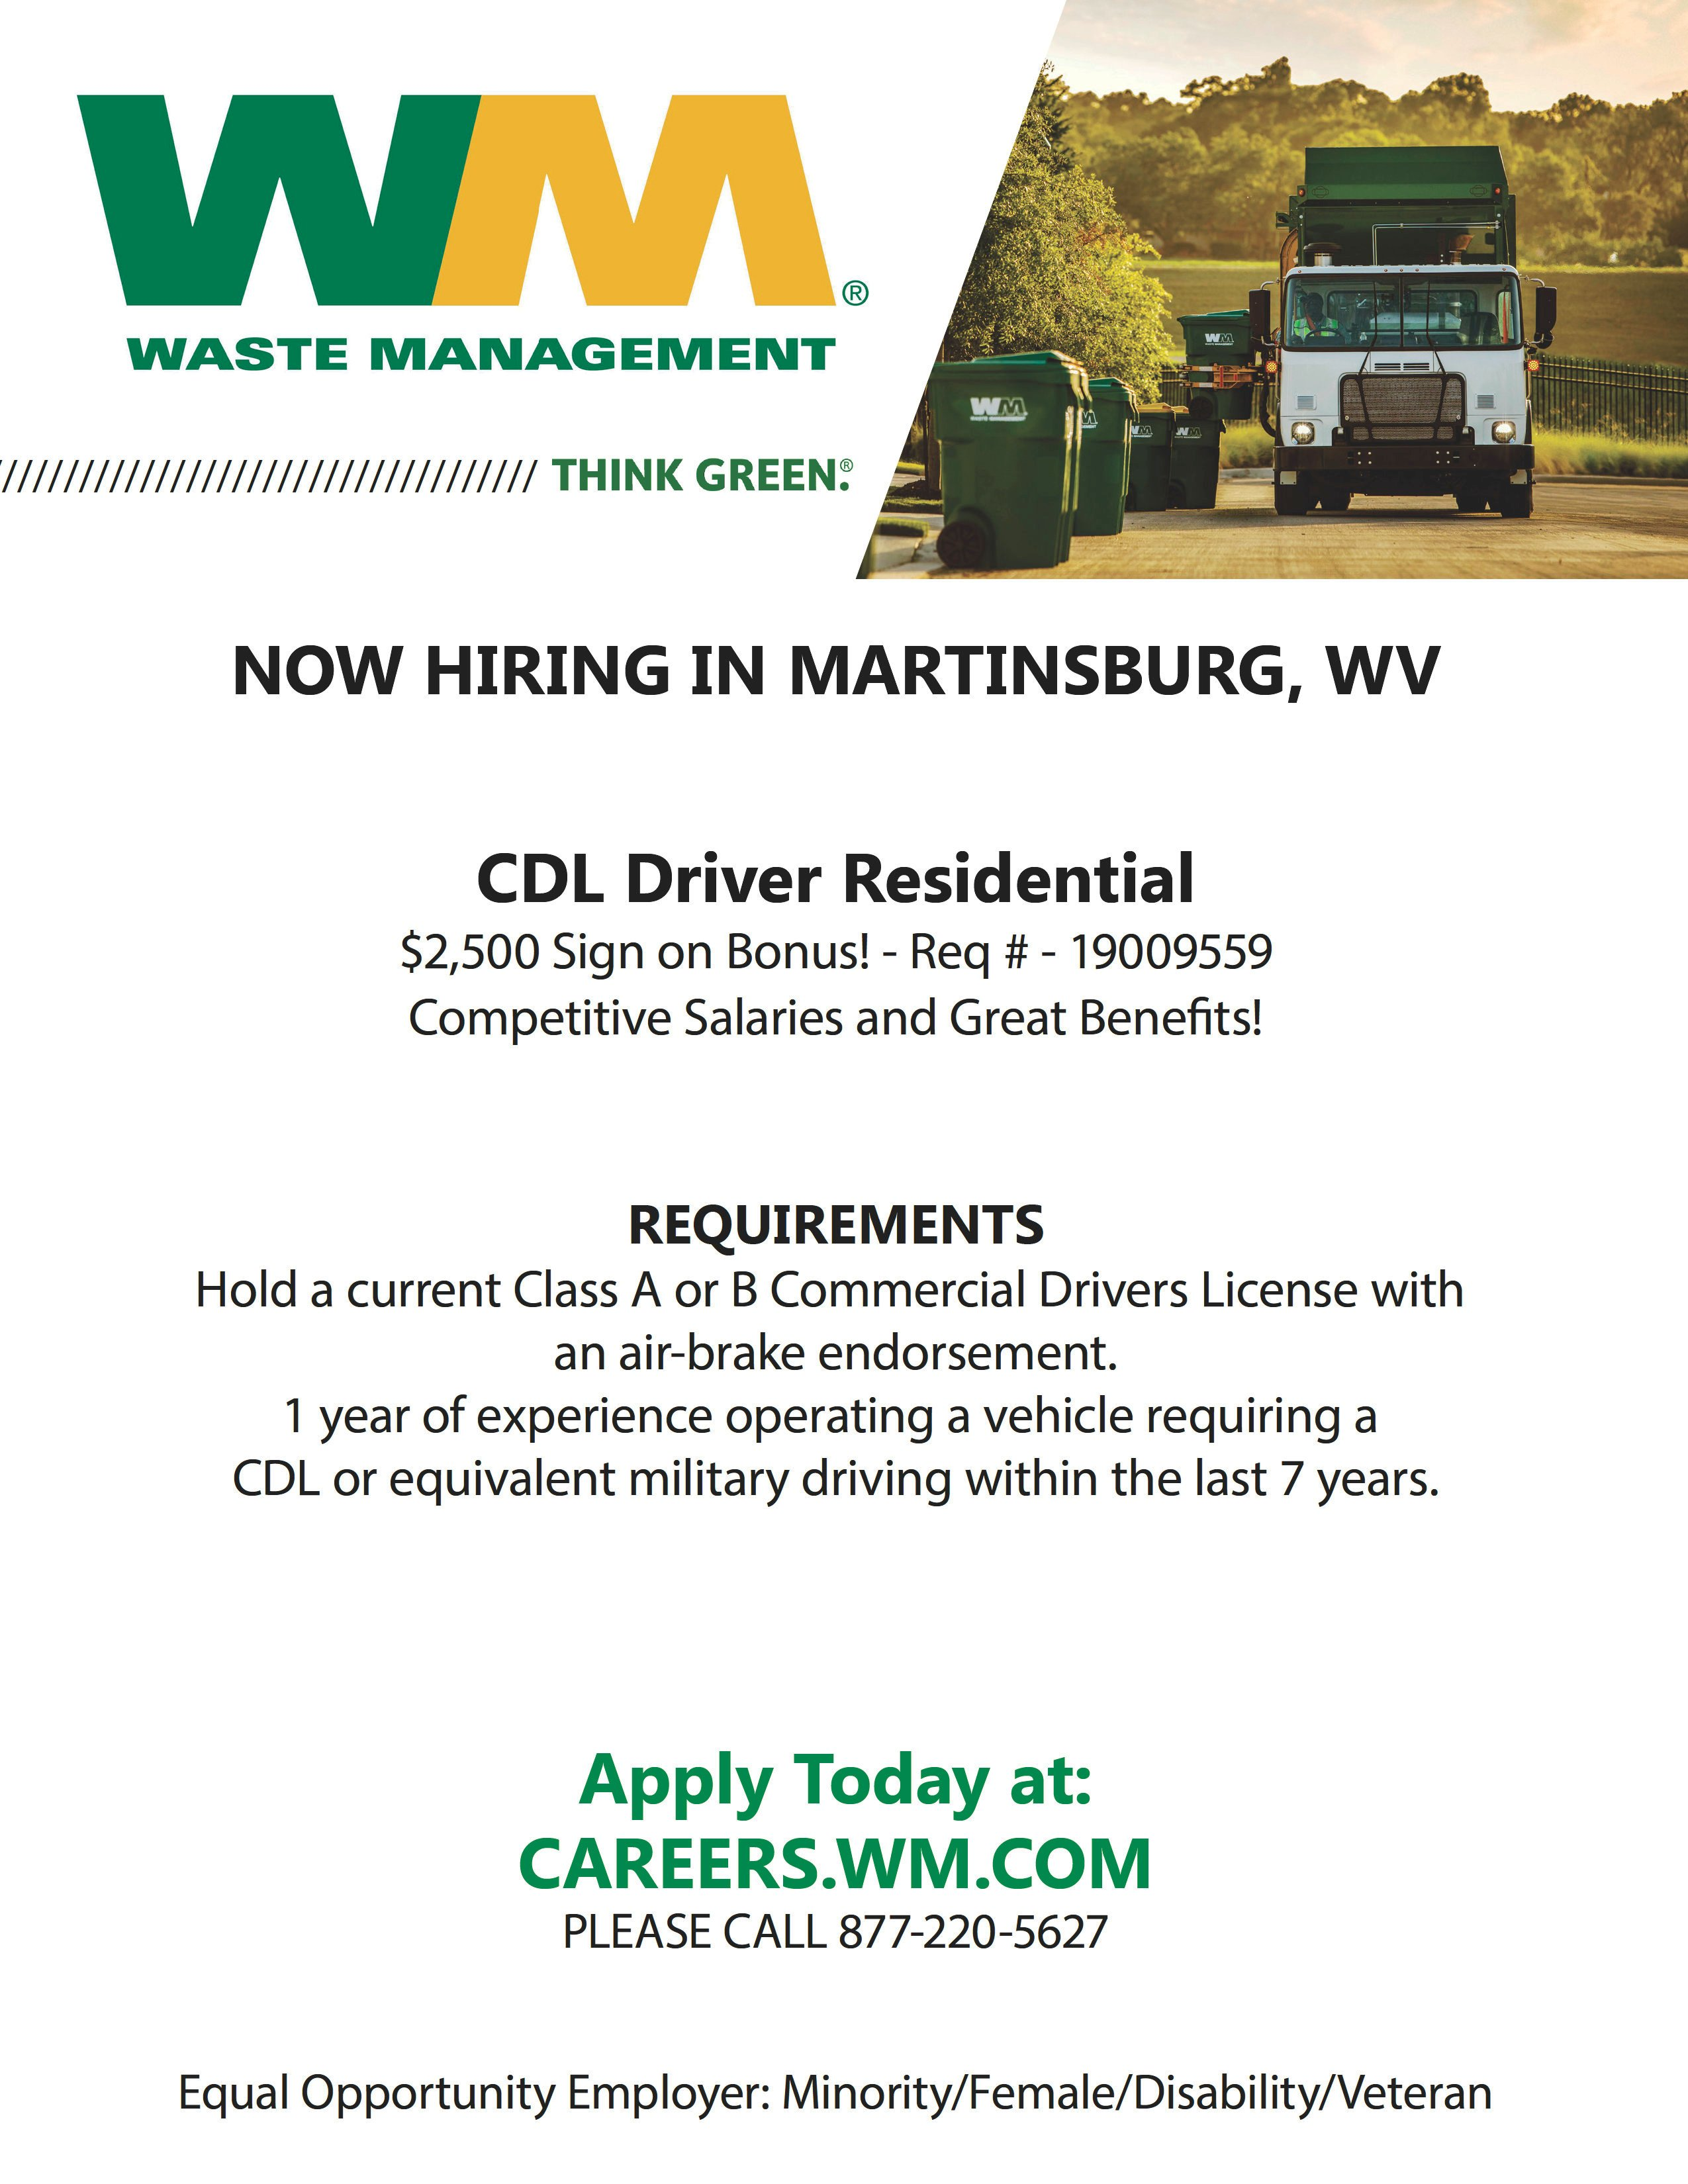 Waste Management – CDL Drivers in Martinsburg, WV